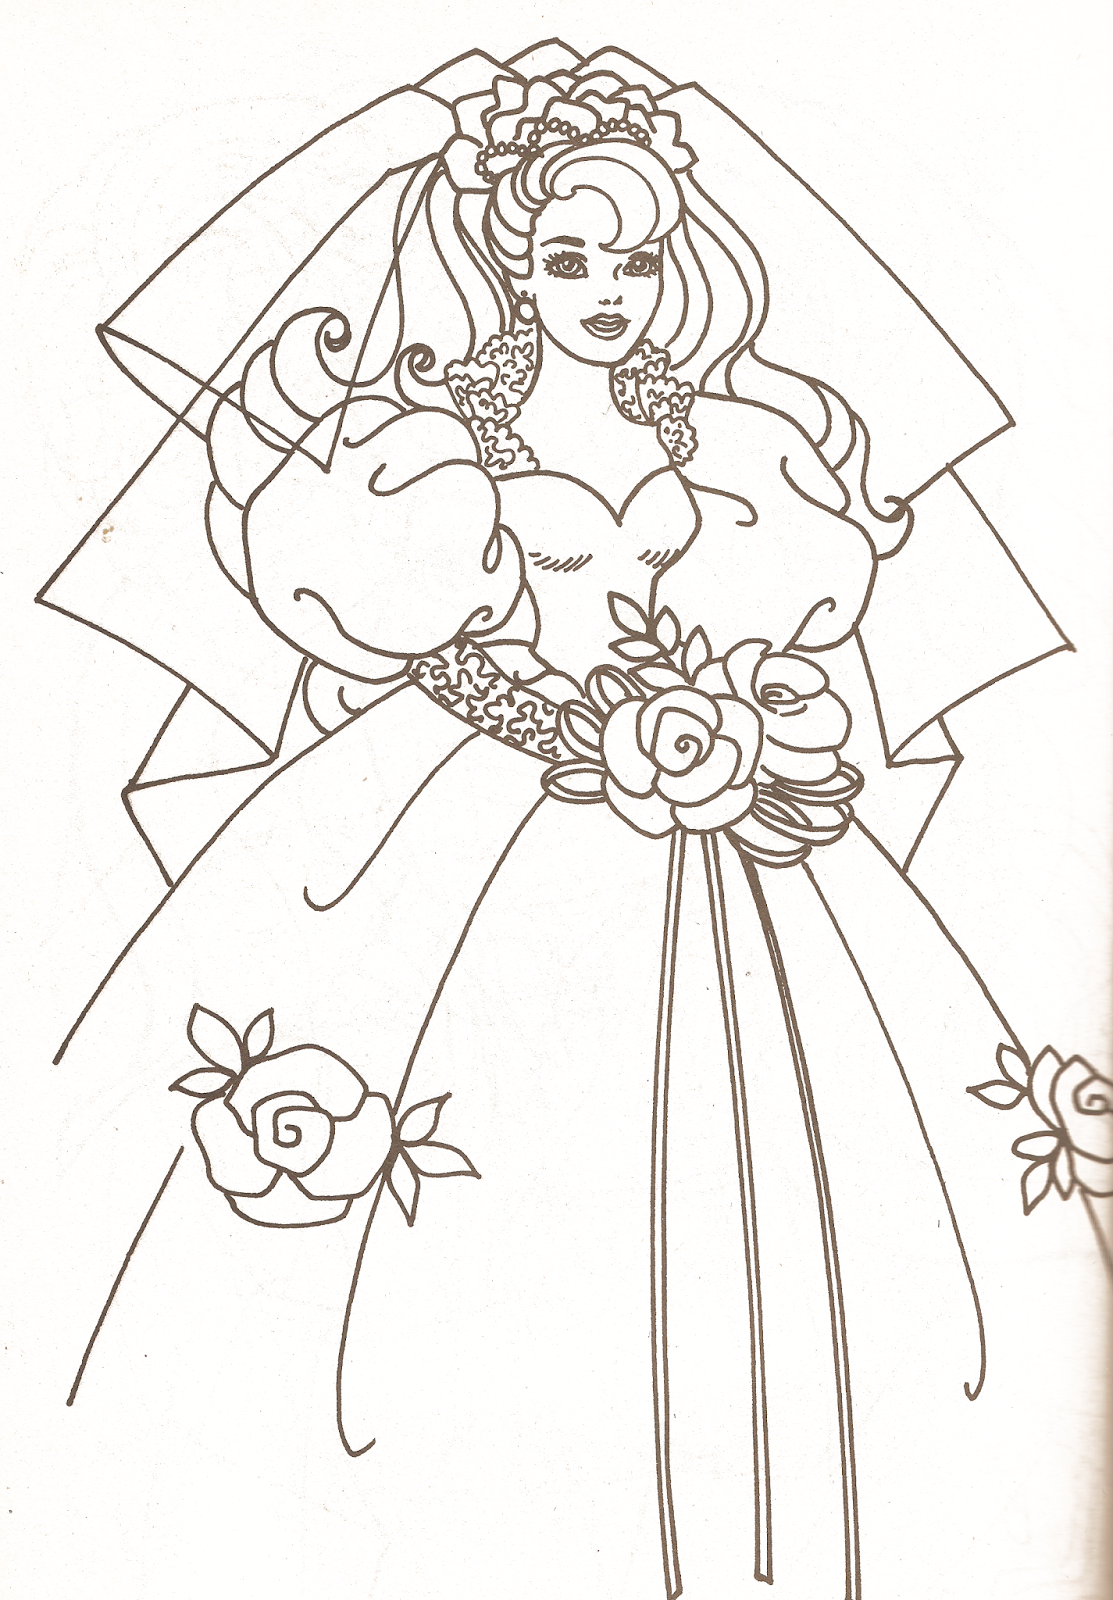 Miss missy paper dolls barbie coloring pages adult coloring pages coloring books colouring